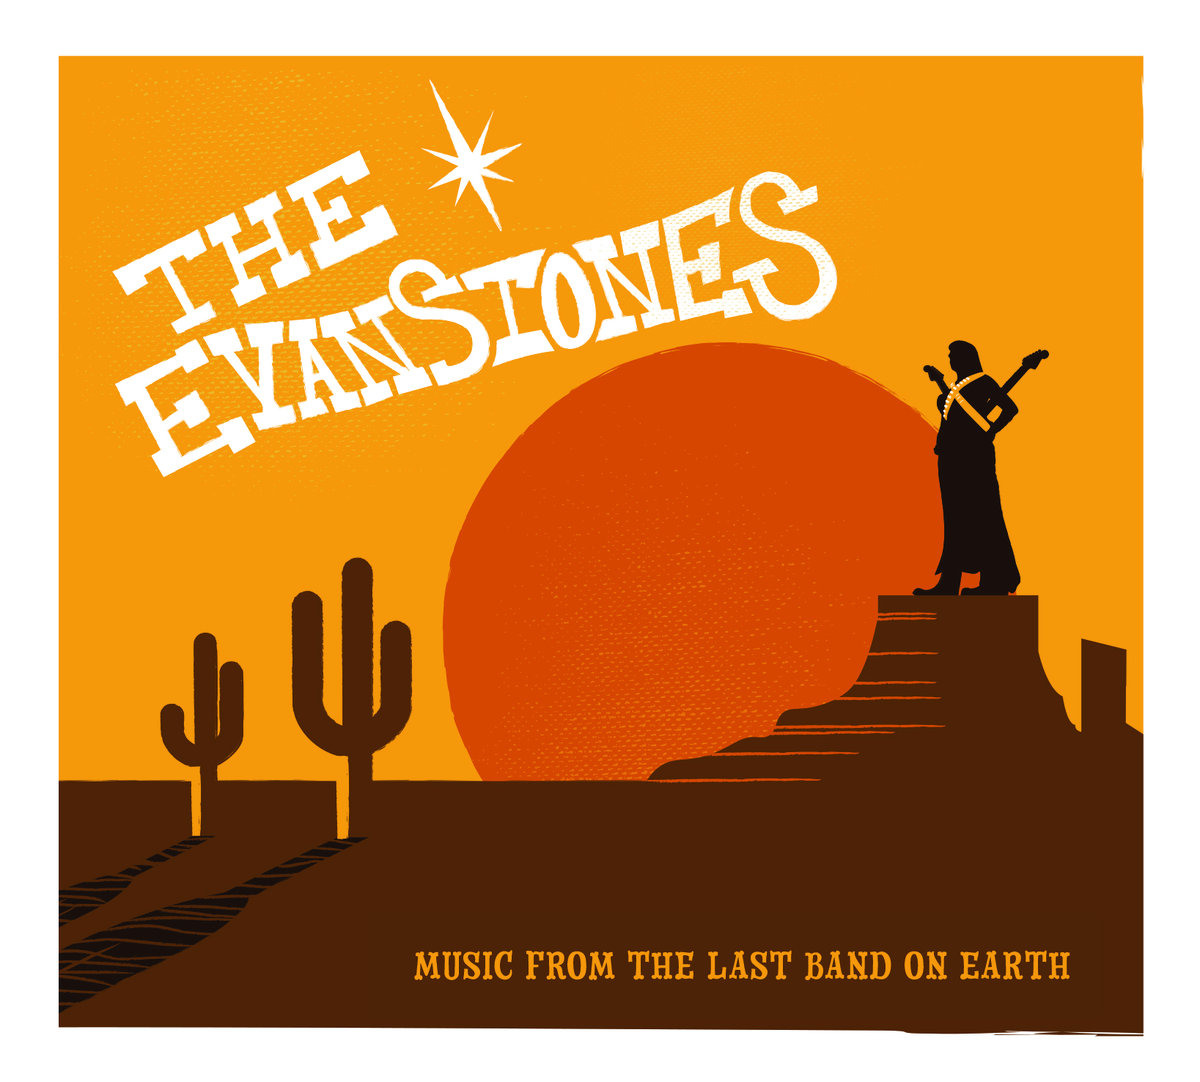 SRW018 The Evanstones - Music From The Last Band On Earth (Digital Download) Image